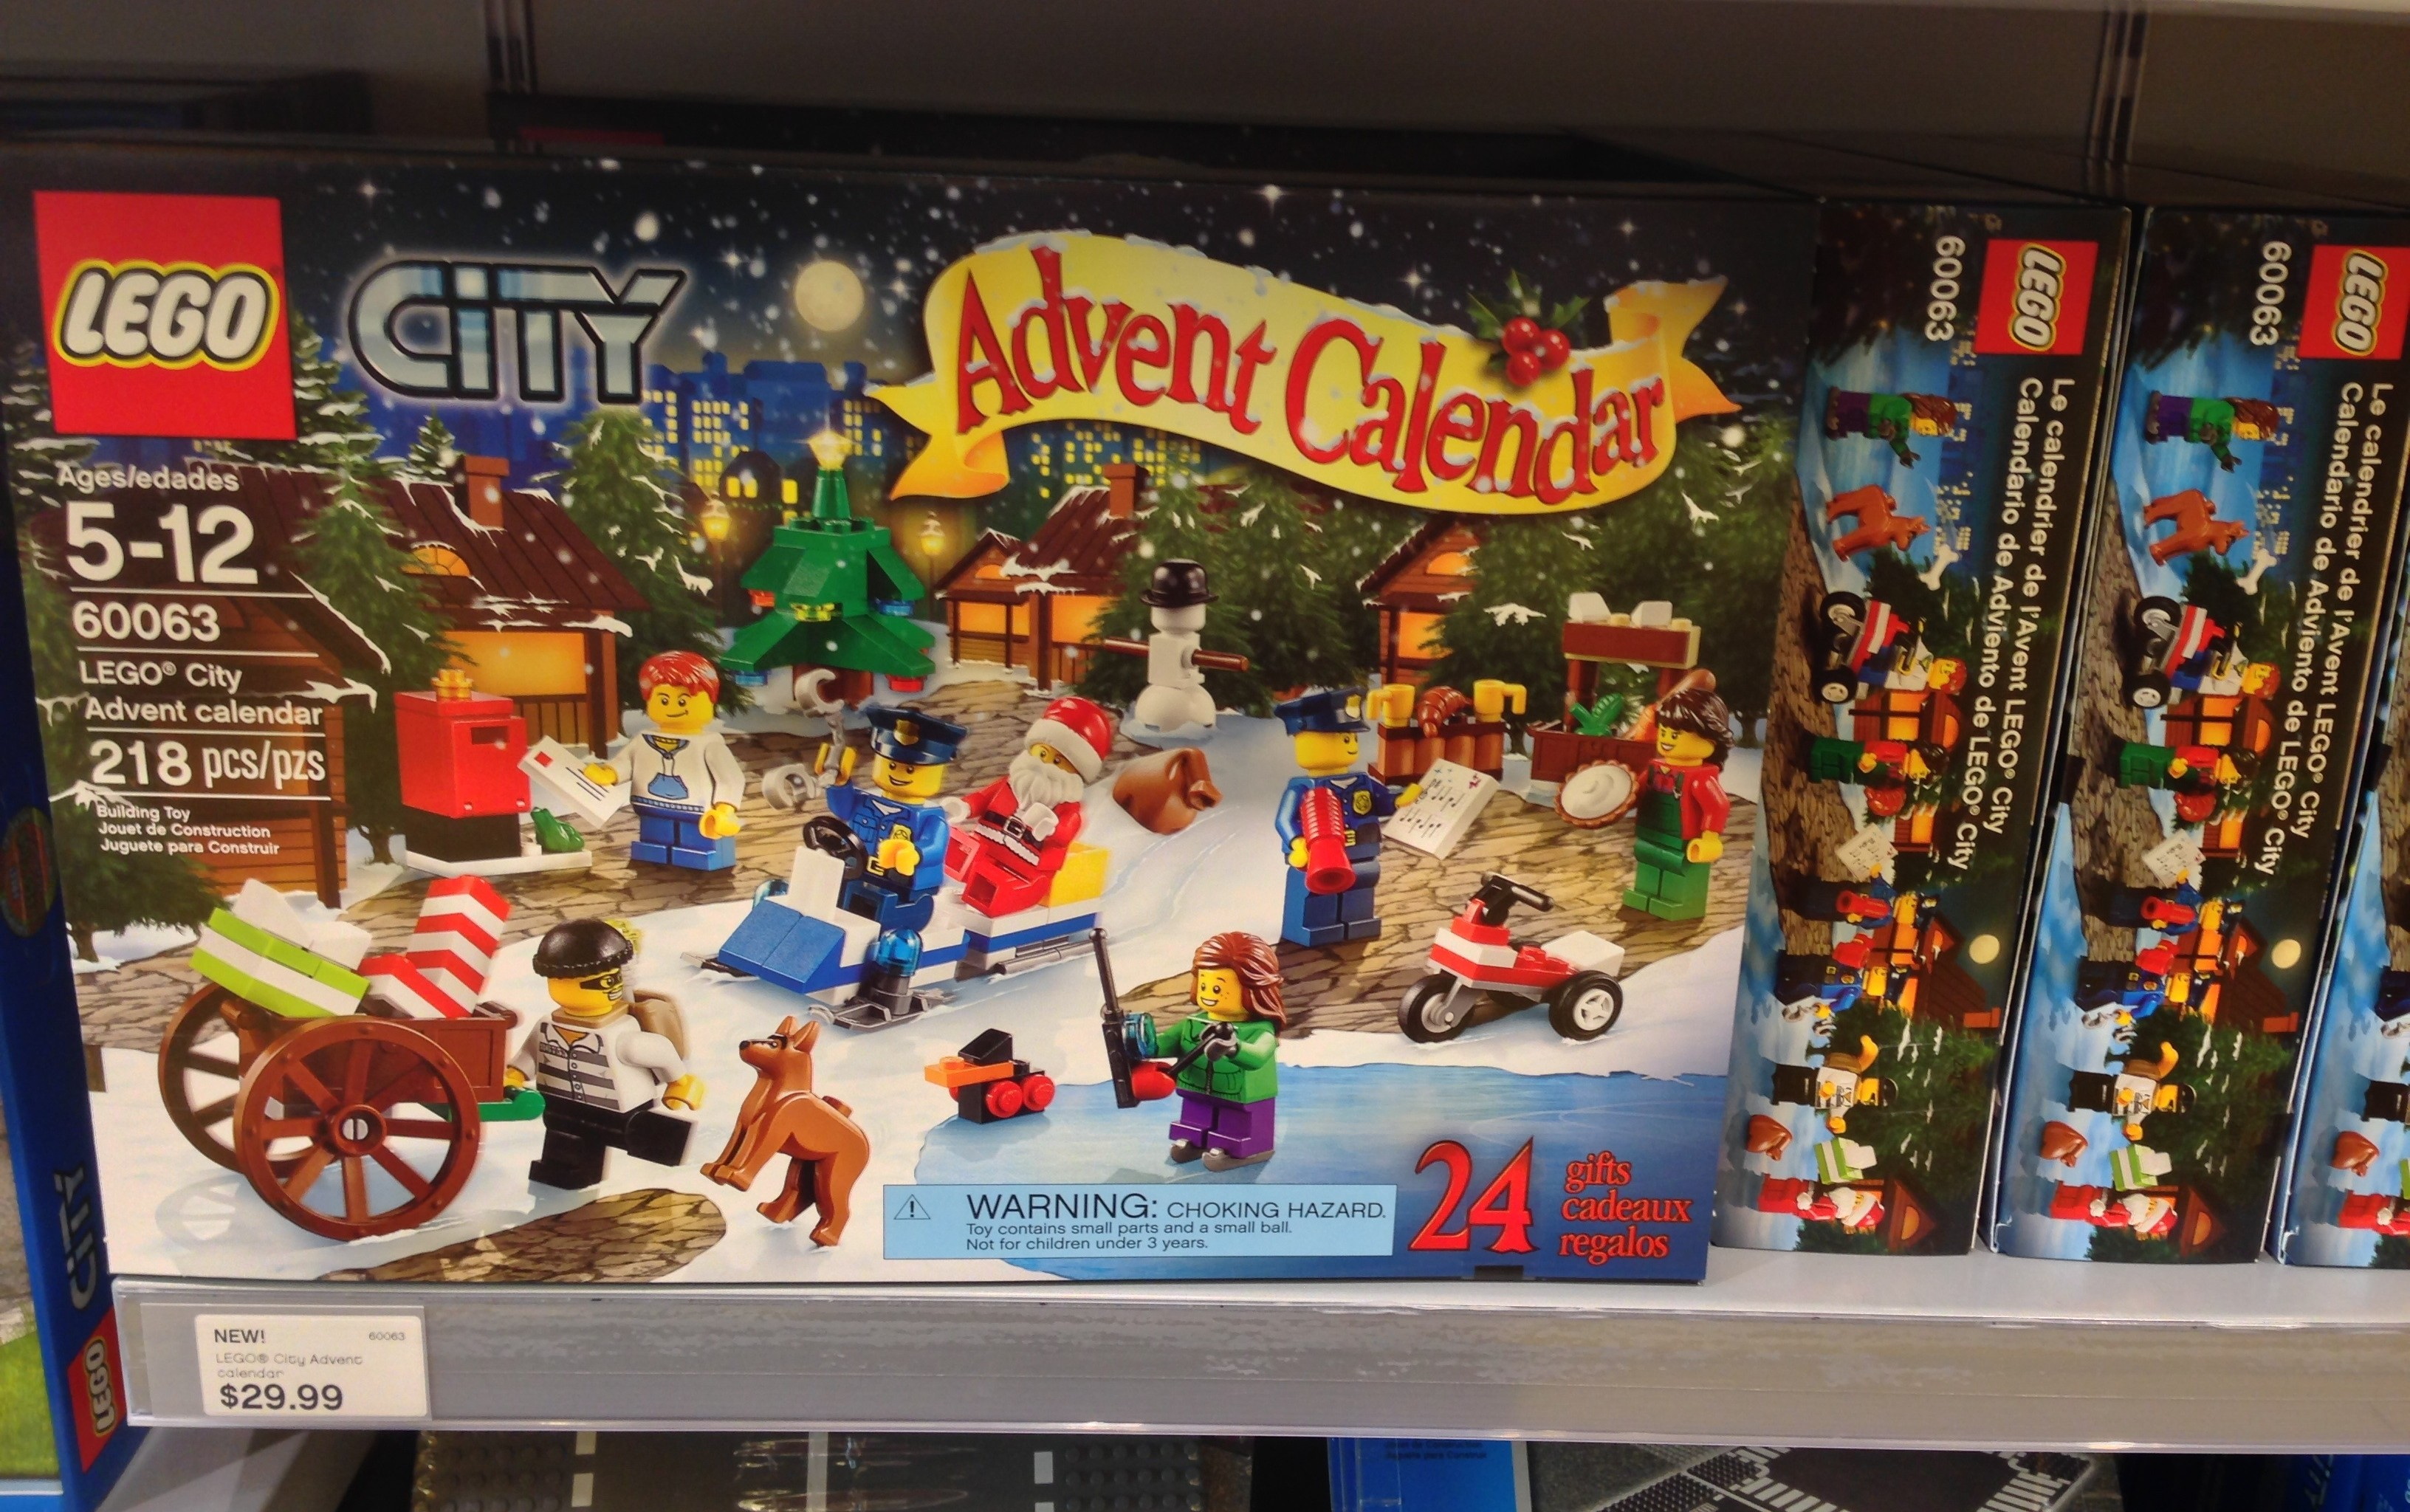 Lego city 2014 advent calendar released in stores photos bricks lego city 2014 advent calendars released voltagebd Choice Image